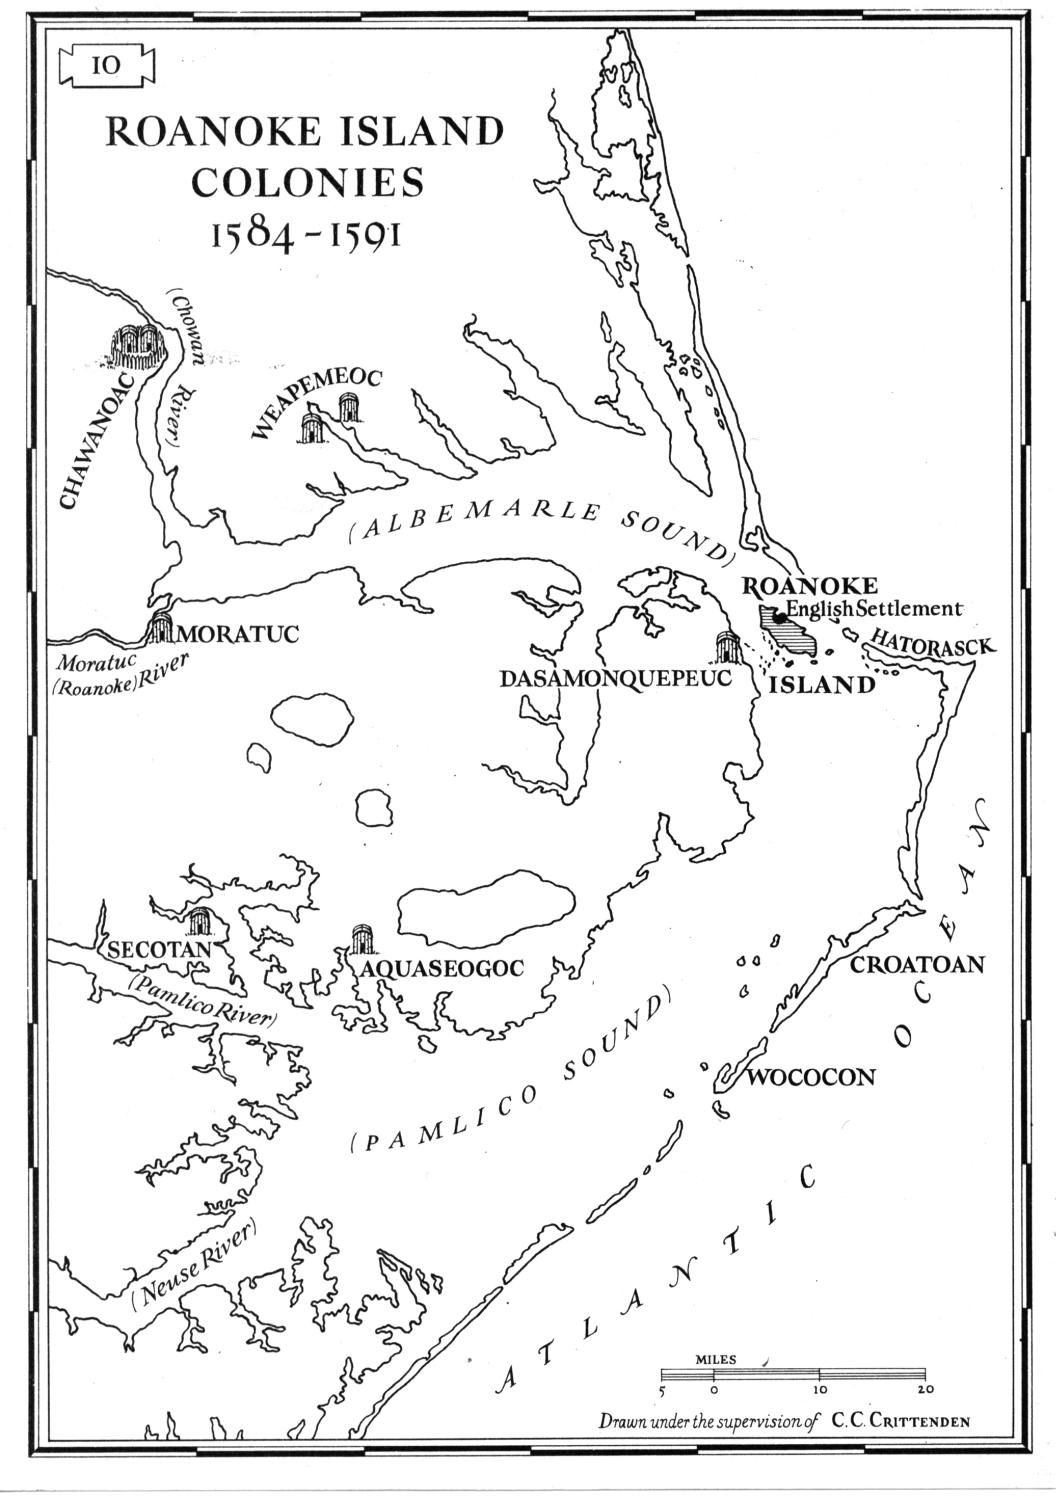 Workbooks thirteen colonies worksheets : Map of outlying indian tribes near Roanoke Island | Lost Colony of ...